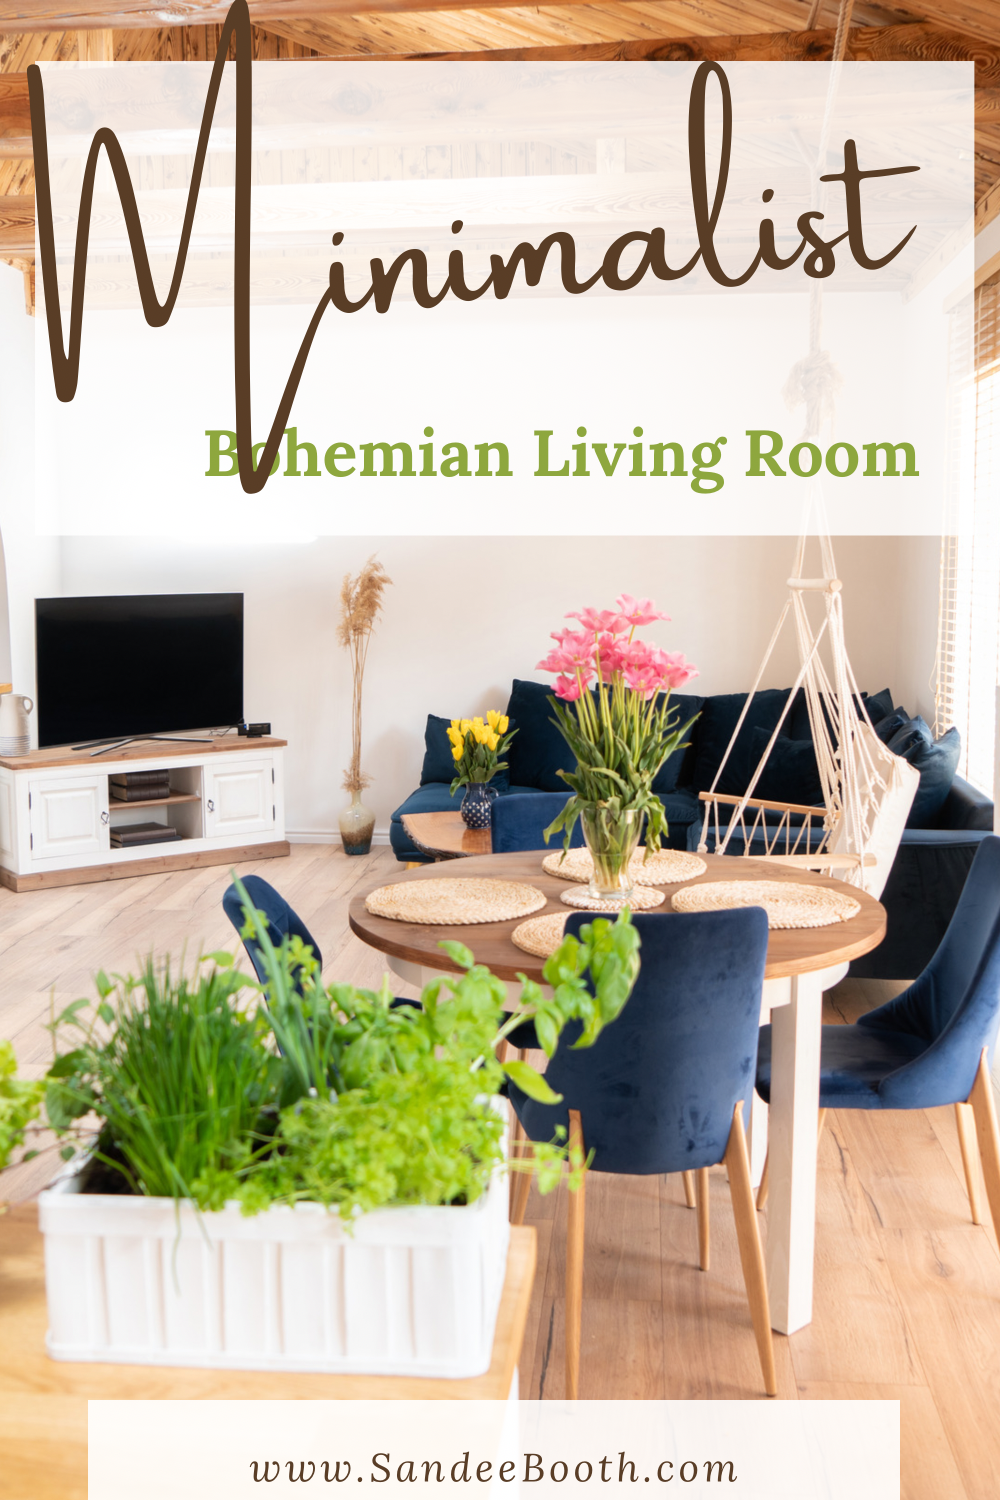 collage of interior and Minimalist Bohemian living room text